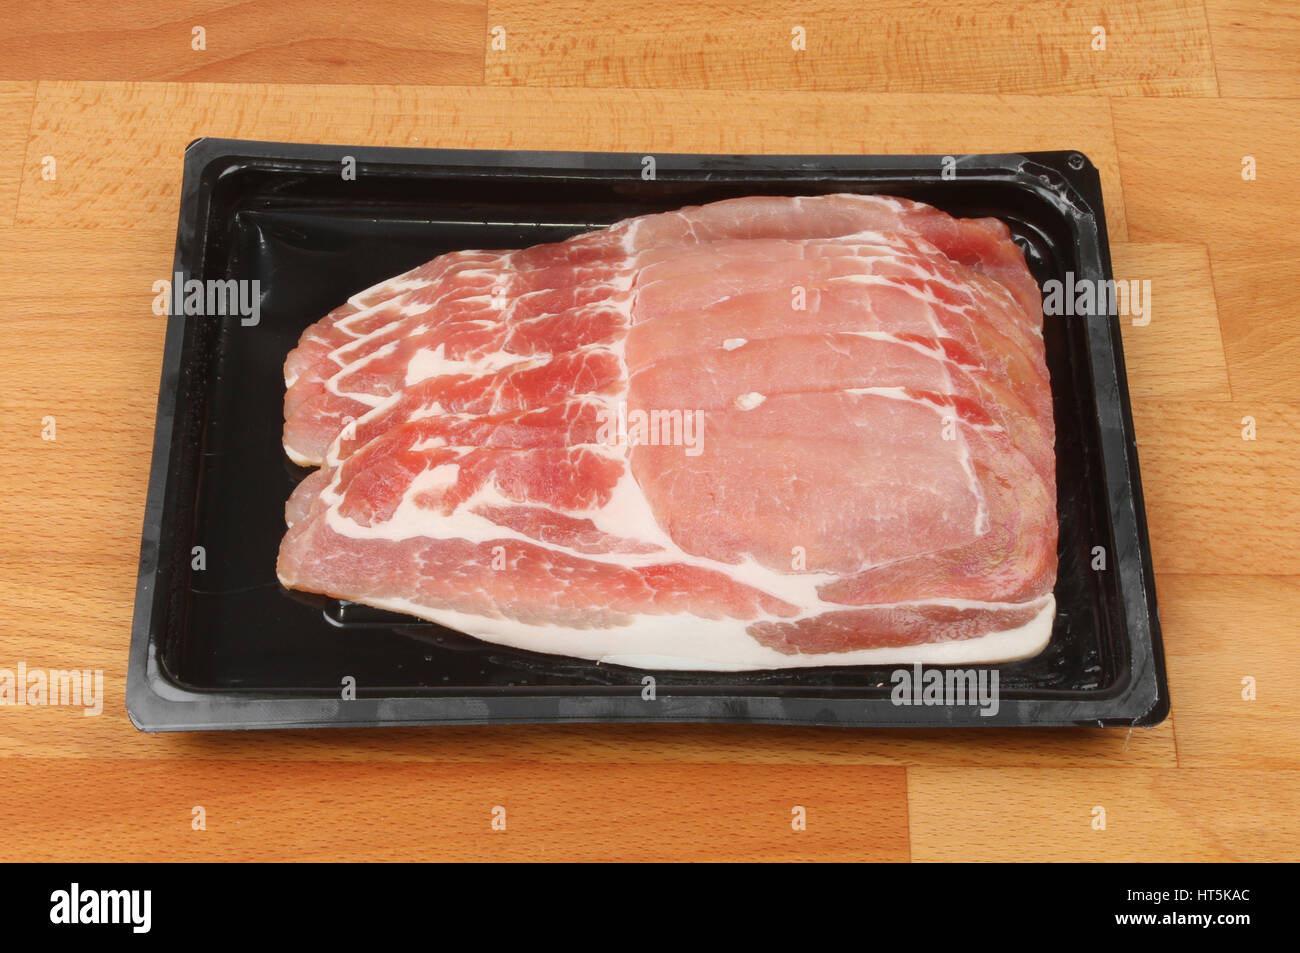 Bacon rashers in a plastic carton on a wooden kitchen worktop - Stock Image